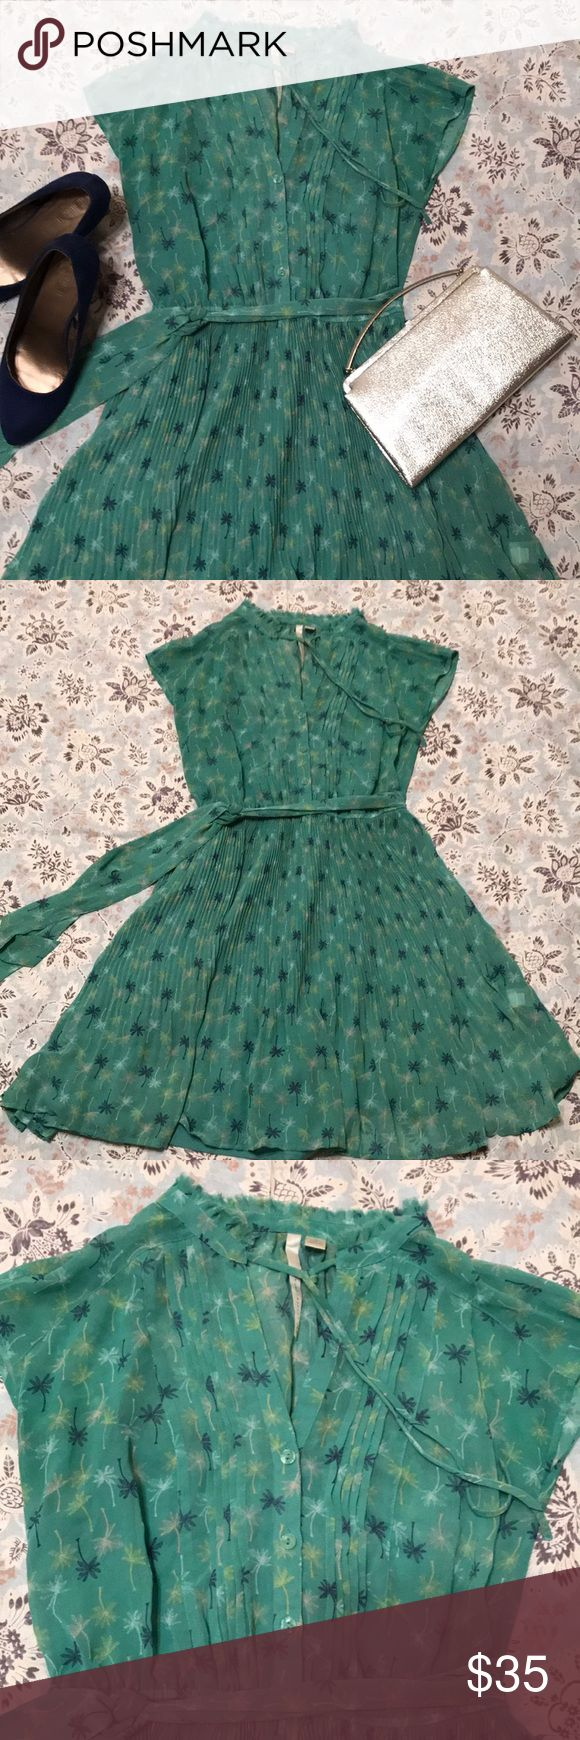 LAURA CONRAD- 50's inspired Dress LAURA CONRAD- 50's inspired Dress LOVE THIS DRESS! Flowing fabric, cute mock neck with tie and tie at waist. SIZE 4 LC Lauren Conrad Dresses Midi